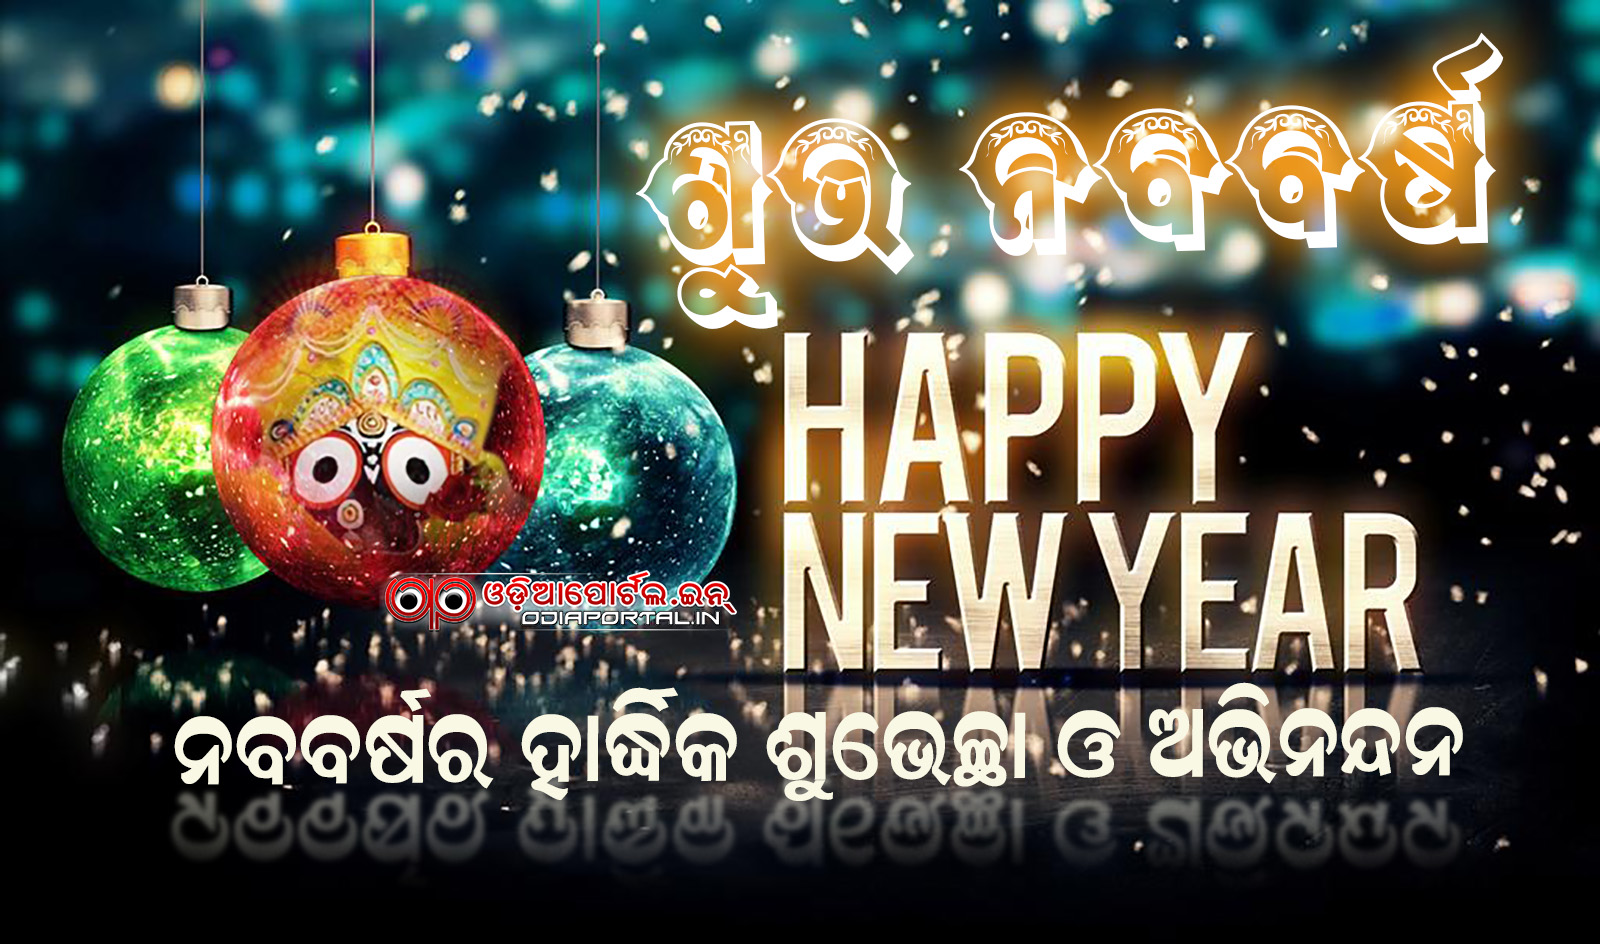 nua barsa orissa odisha wallpaper in odia oriya naba barsa wallpaper greetings scraps happy new year